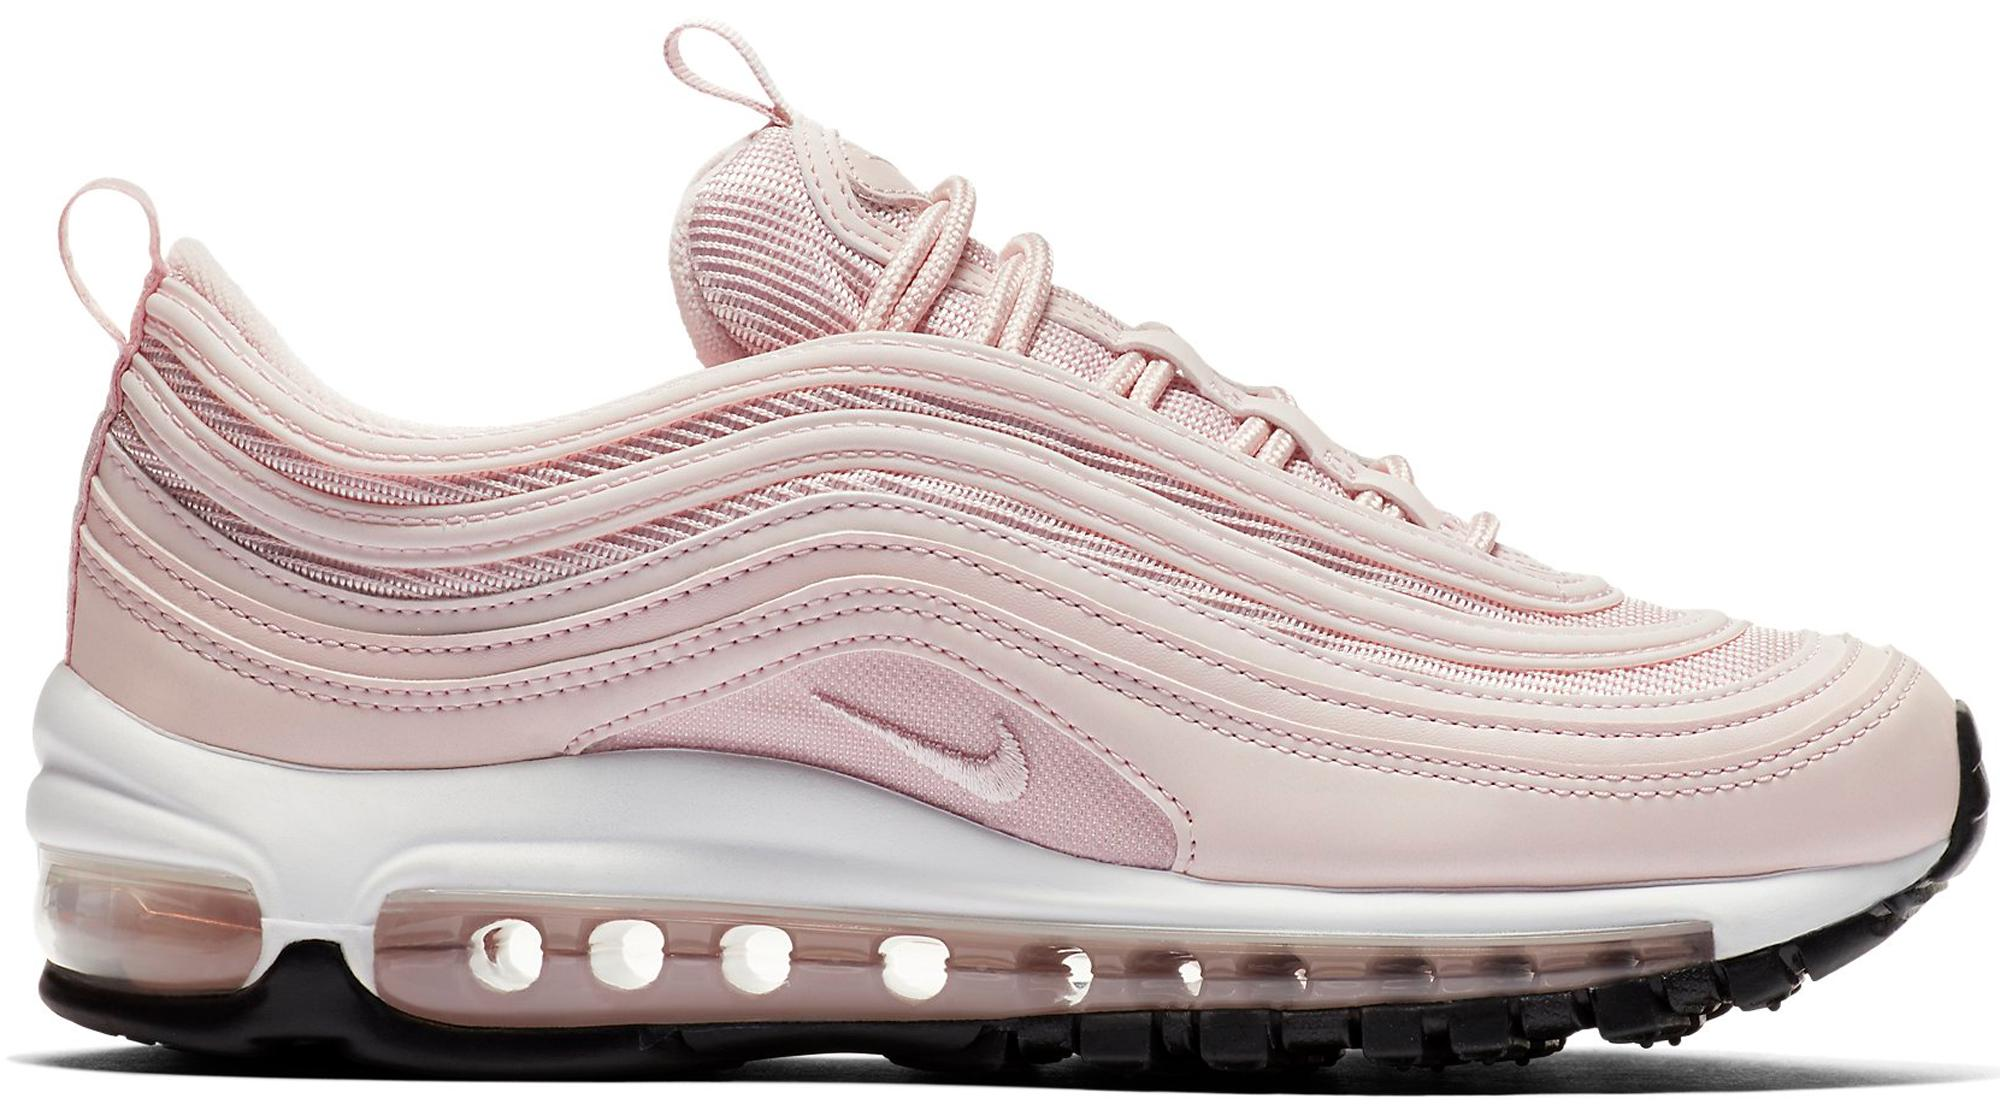 Nike Air Max 97 Barely Rose Black Sole